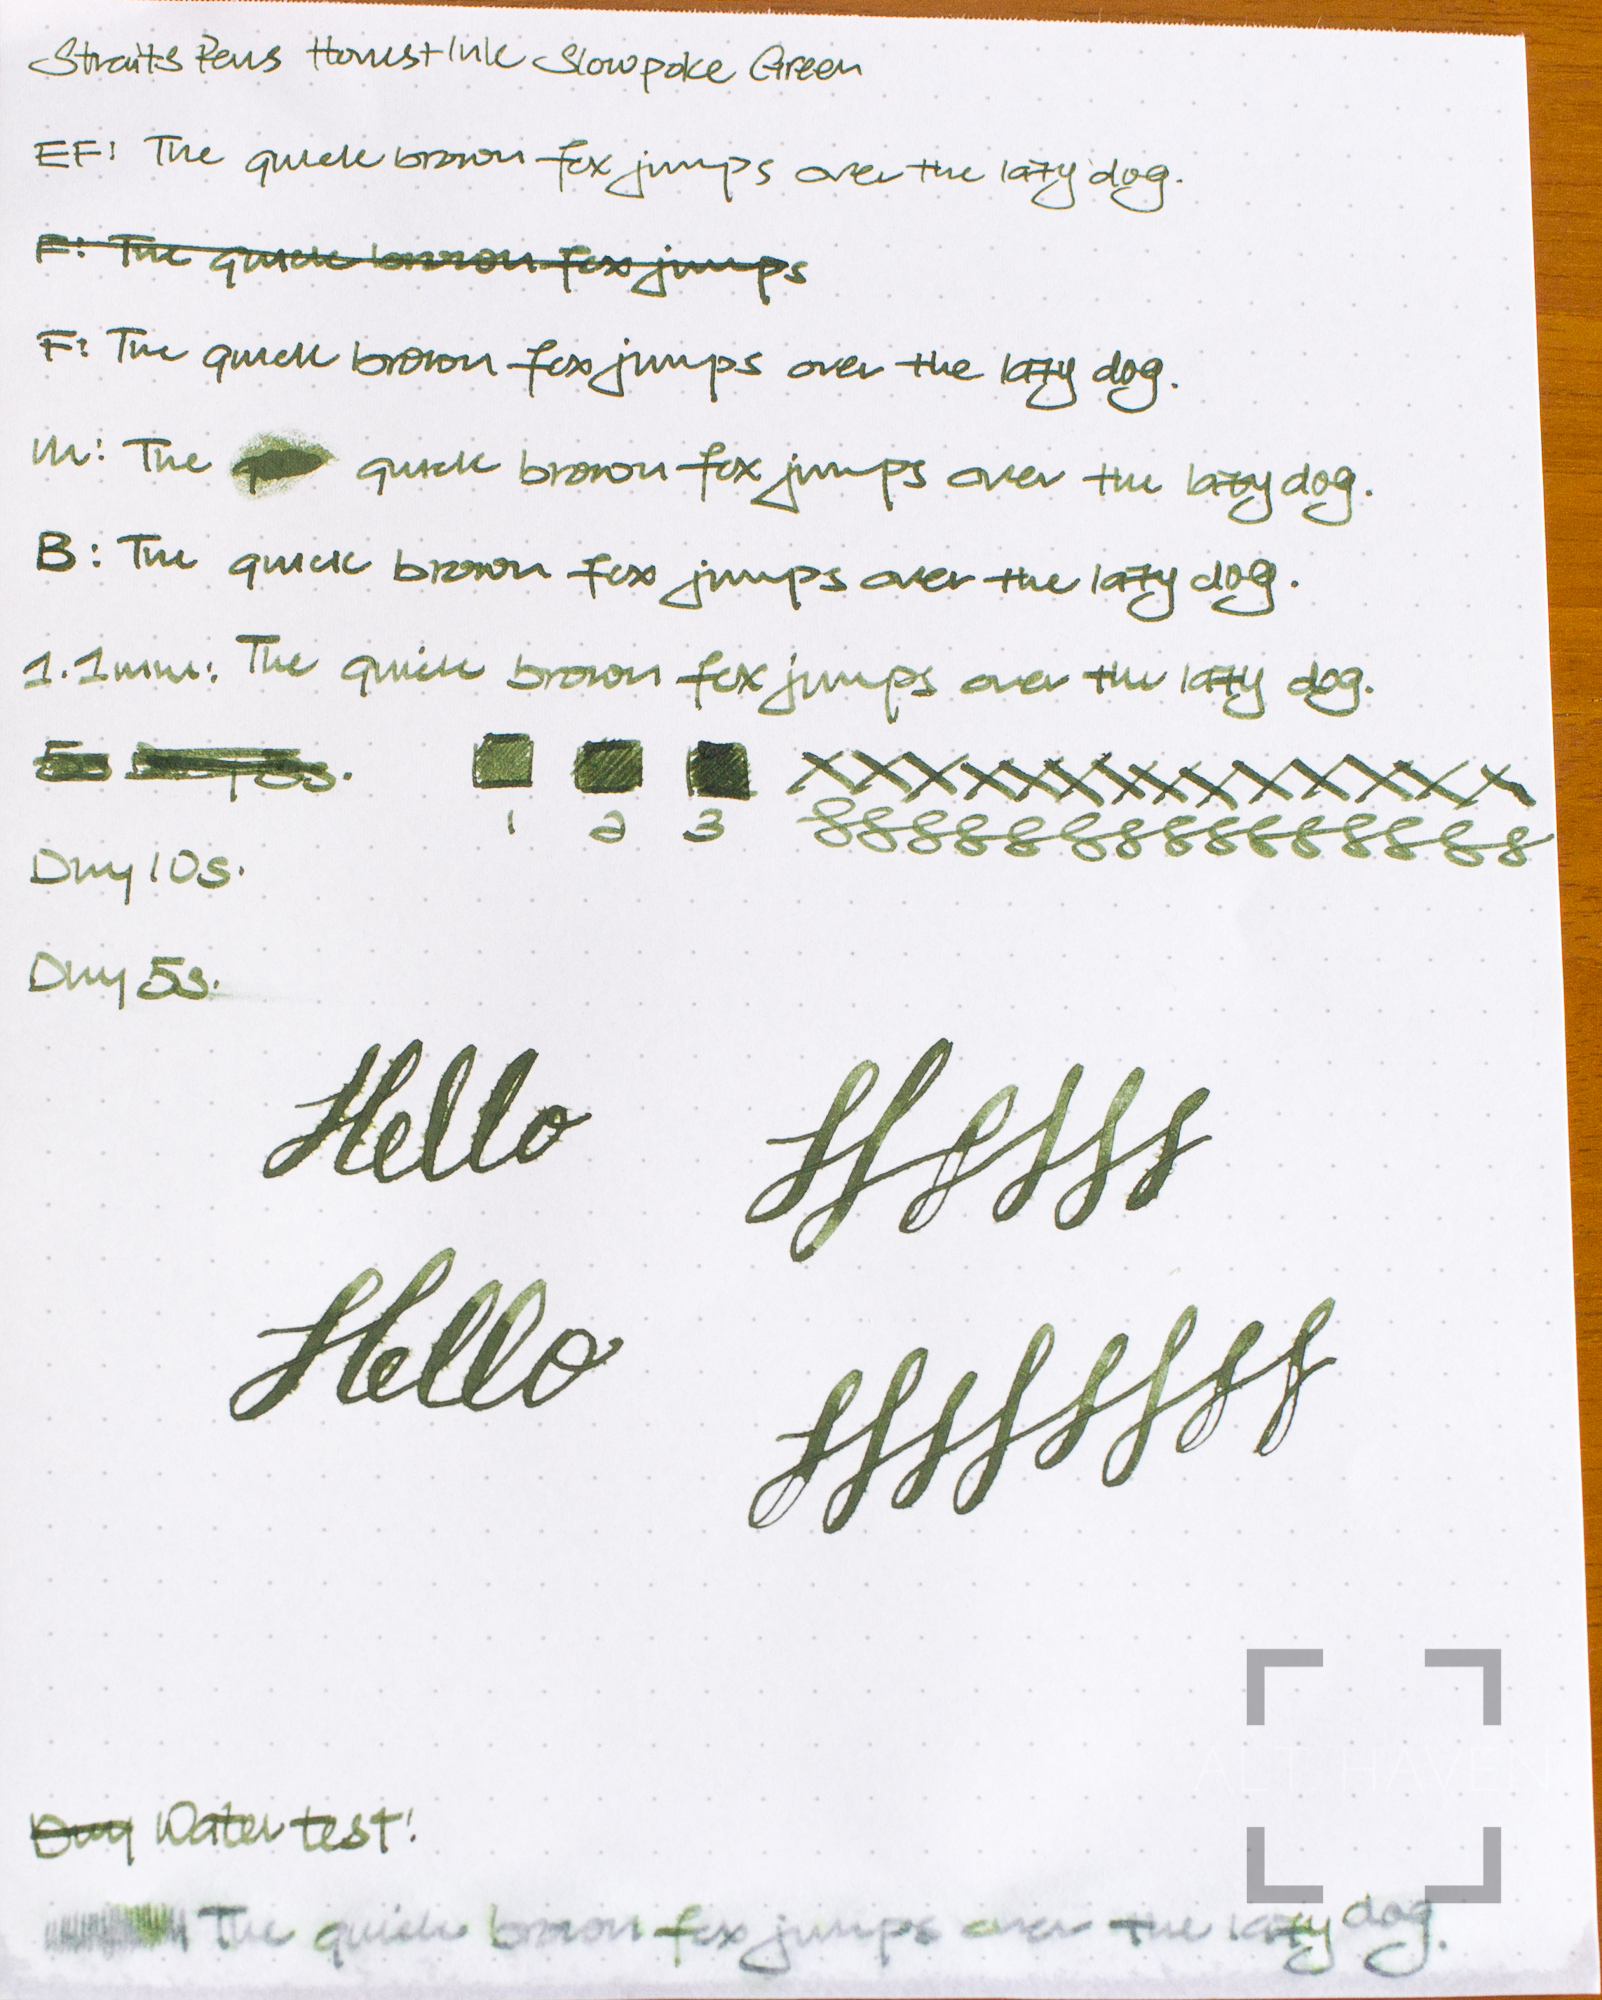 Straits Pen Honest Inks Slowpoke Green.jpg